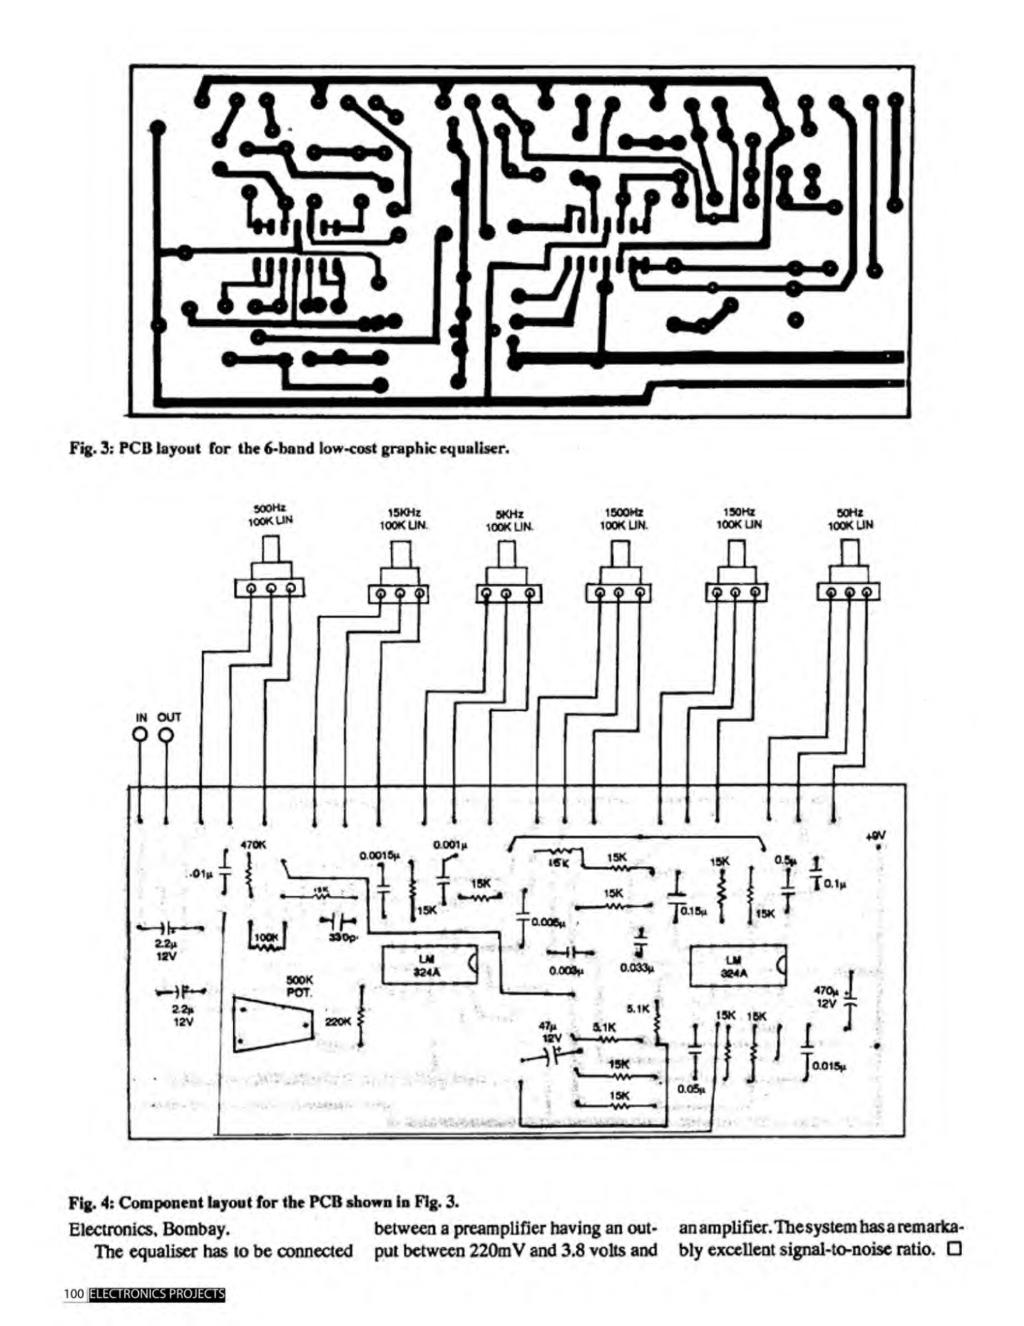 A Compilation Of 102 And Circuit Ideas For Construction Projects 12v To 220v Inverter 180w By 2n3055 Electronic Circuits Schematics Fig 3 Pcb Layout The 6 Band Low Cost Graphic Equaliser